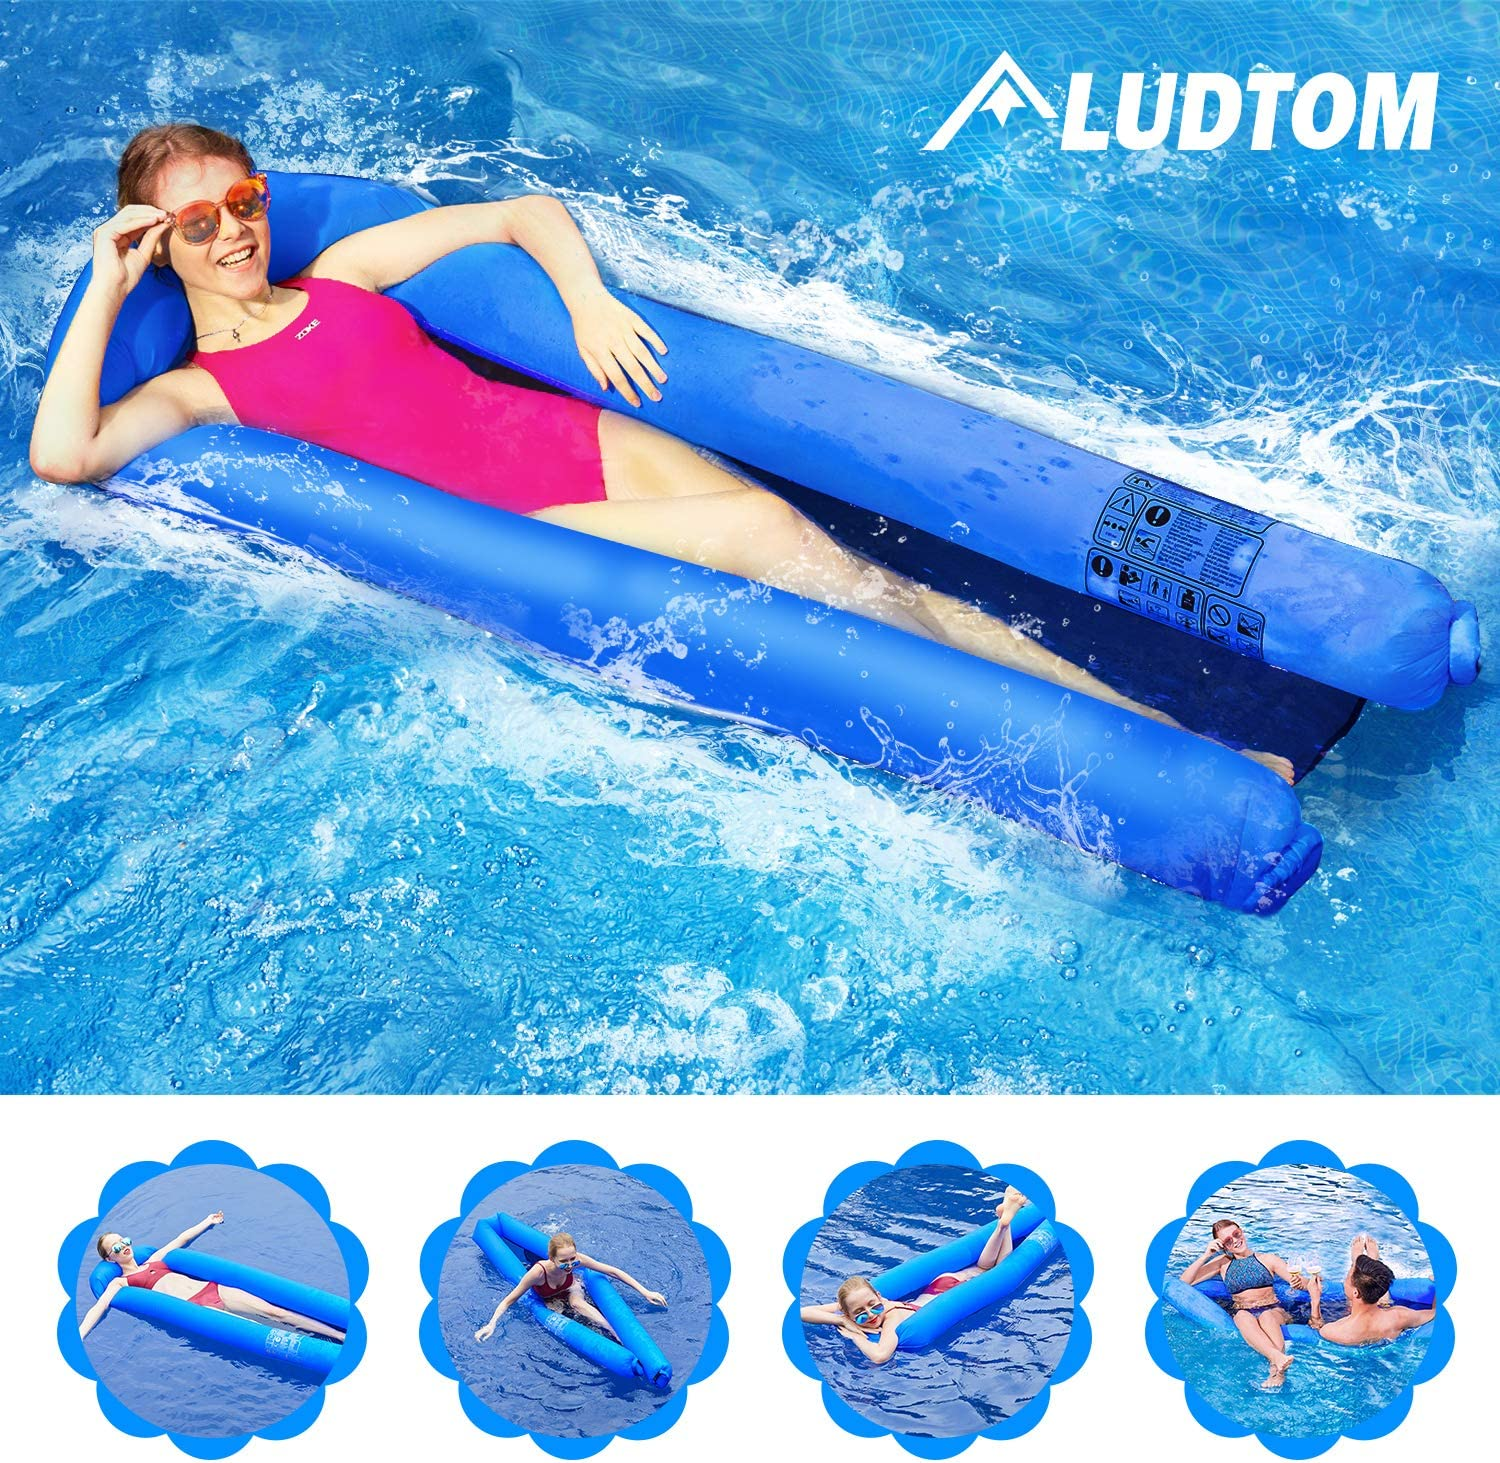 Duo Twin Pool Float